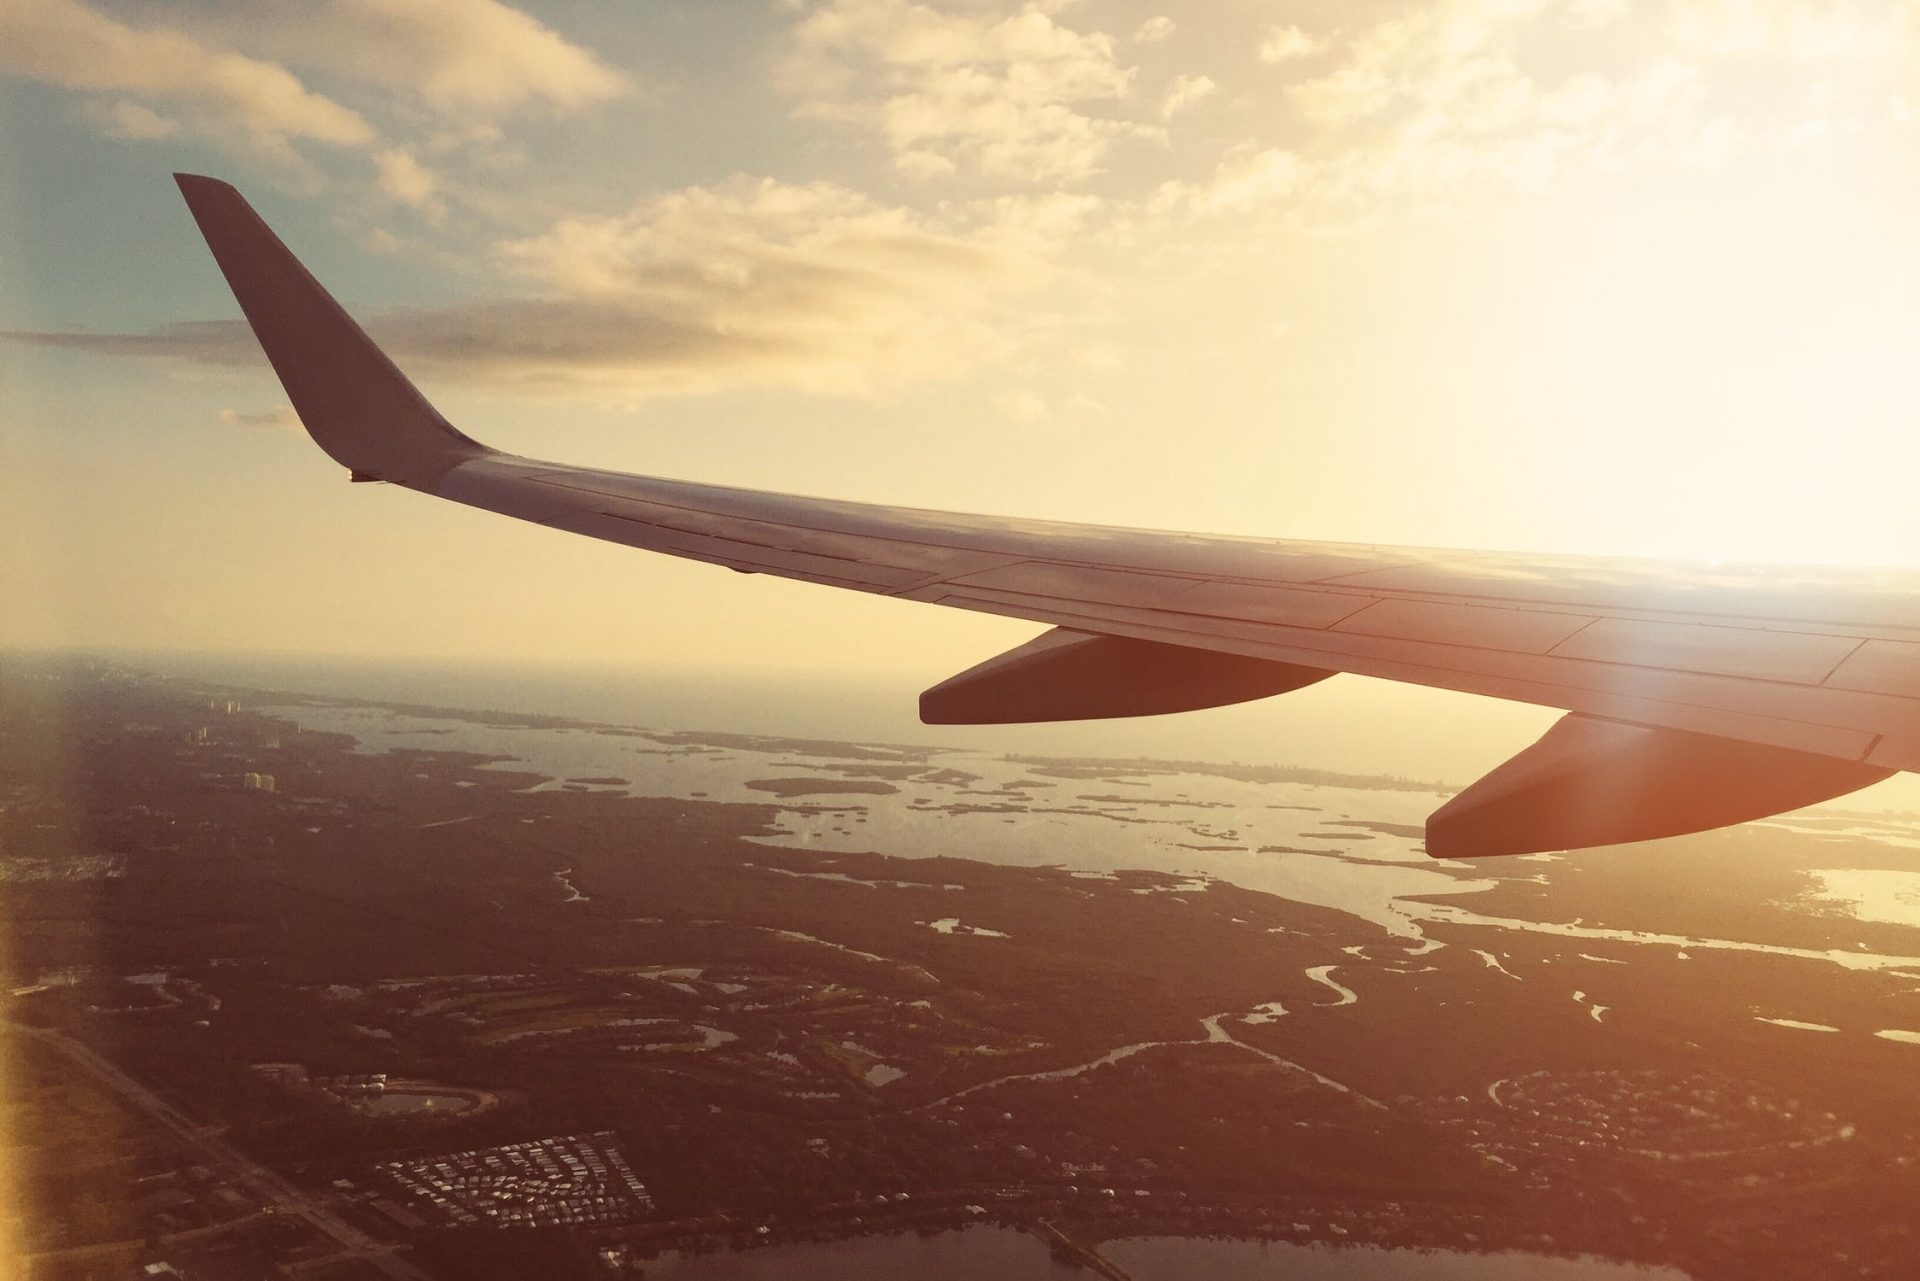 What Actually Is Jet Lag and Can You Avoid It 1 What Is Jet Lag and Can You Avoid It?